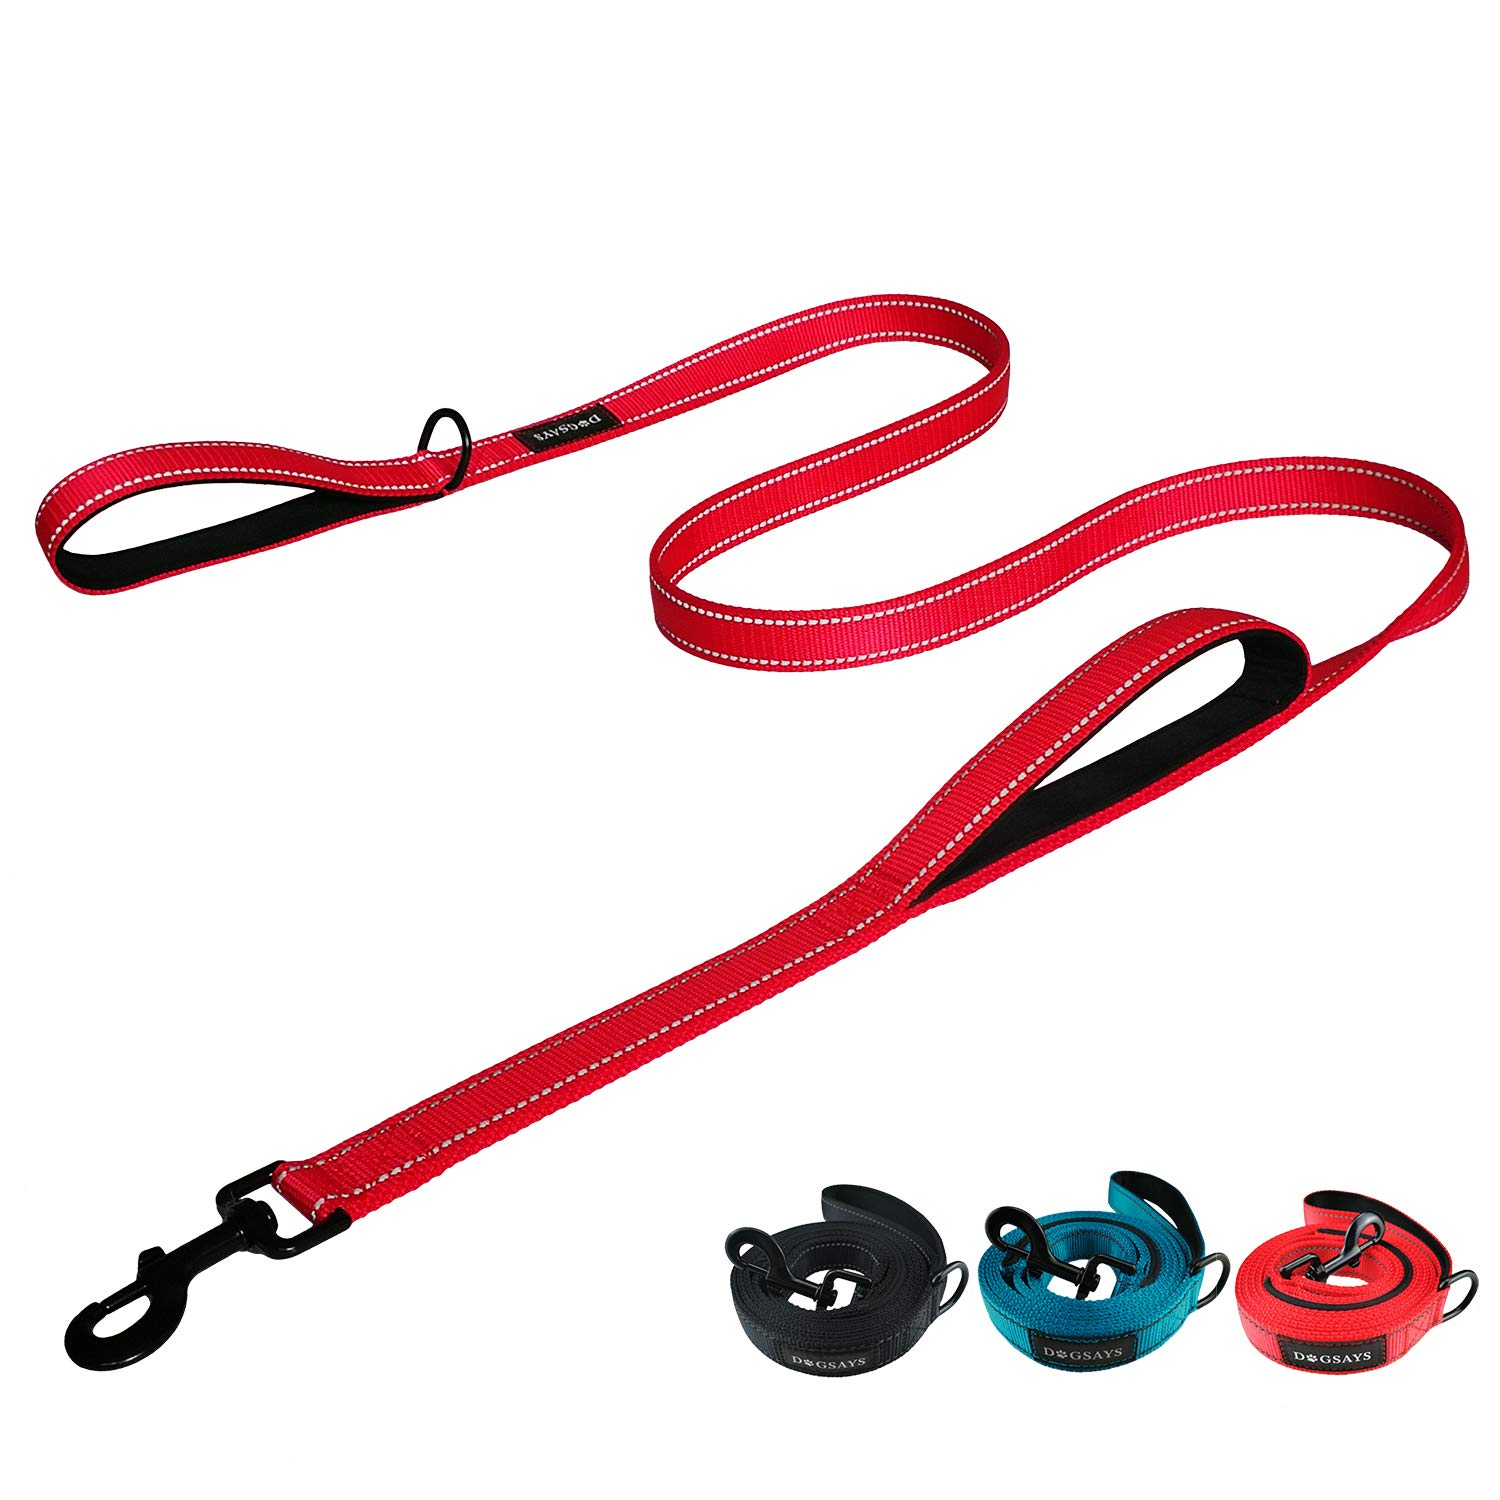 DOGSAYS Dog Leash 6ft Long - Traffic Padded Two Handle - Heavy Duty - Double Handles Lead for Control Safety Training - Leashes for Large Dogs or Medium Dogs - Reflective Nylon